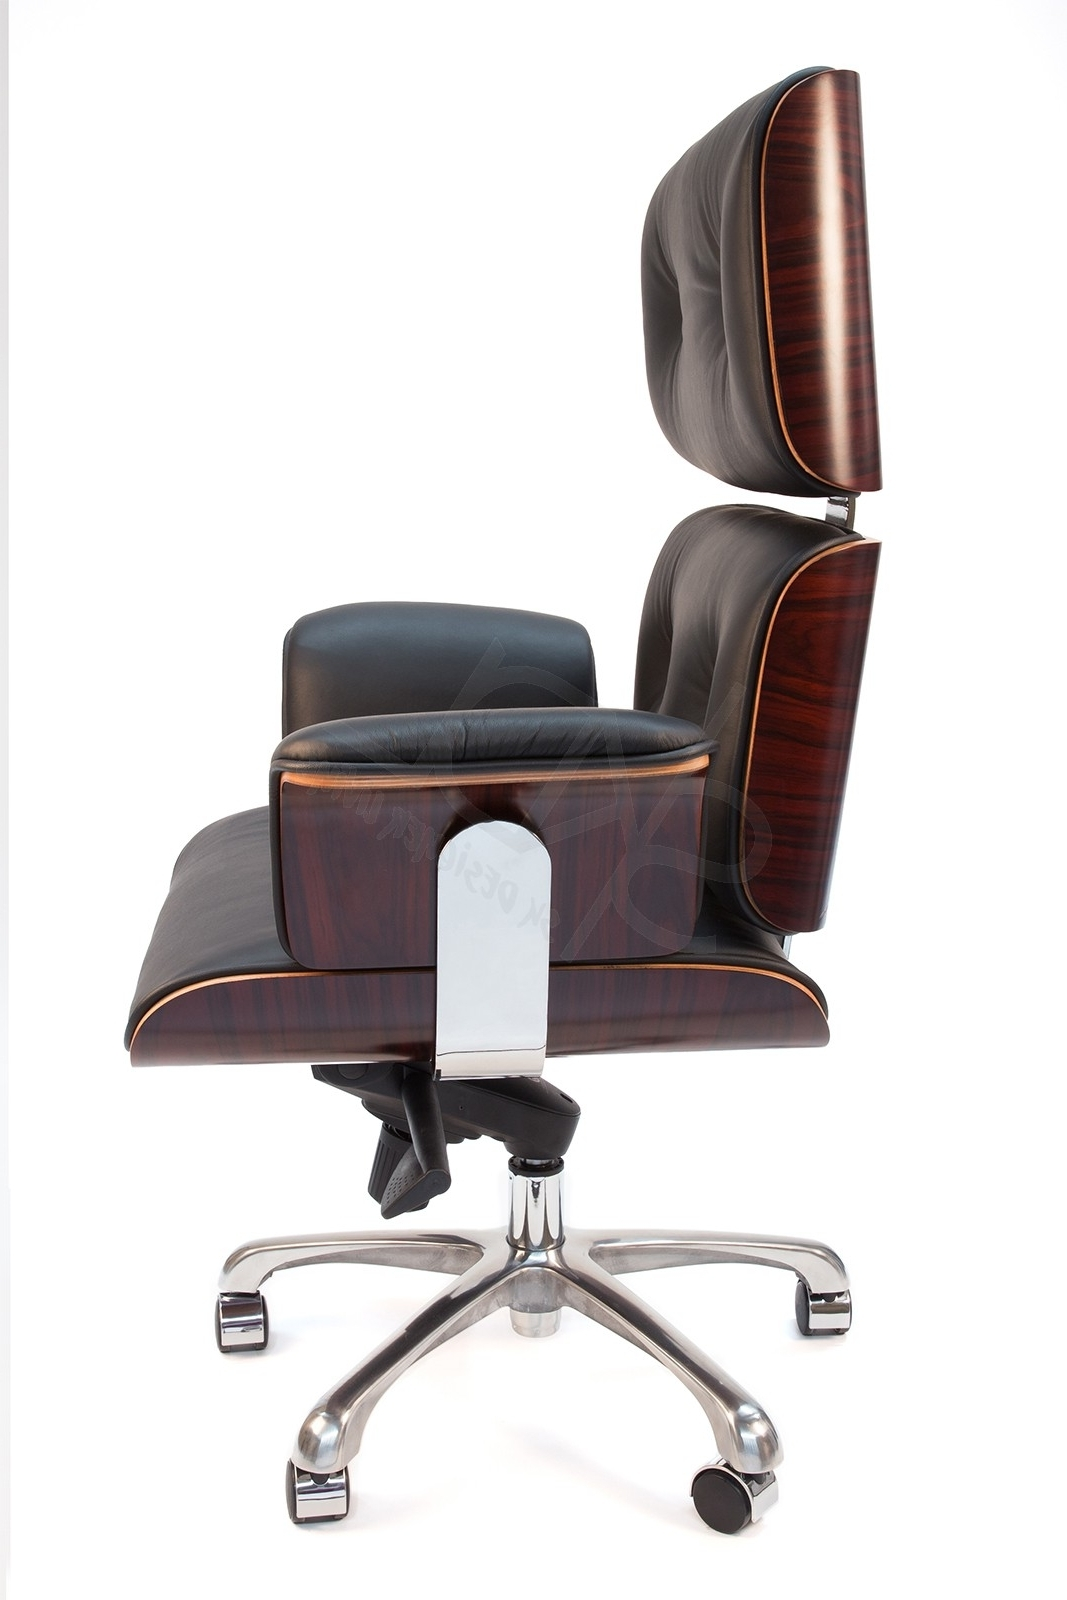 Premium Executive Office Chairs Throughout Most Recent Replica Eames High Back Executive Office Chair (View 6 of 20)